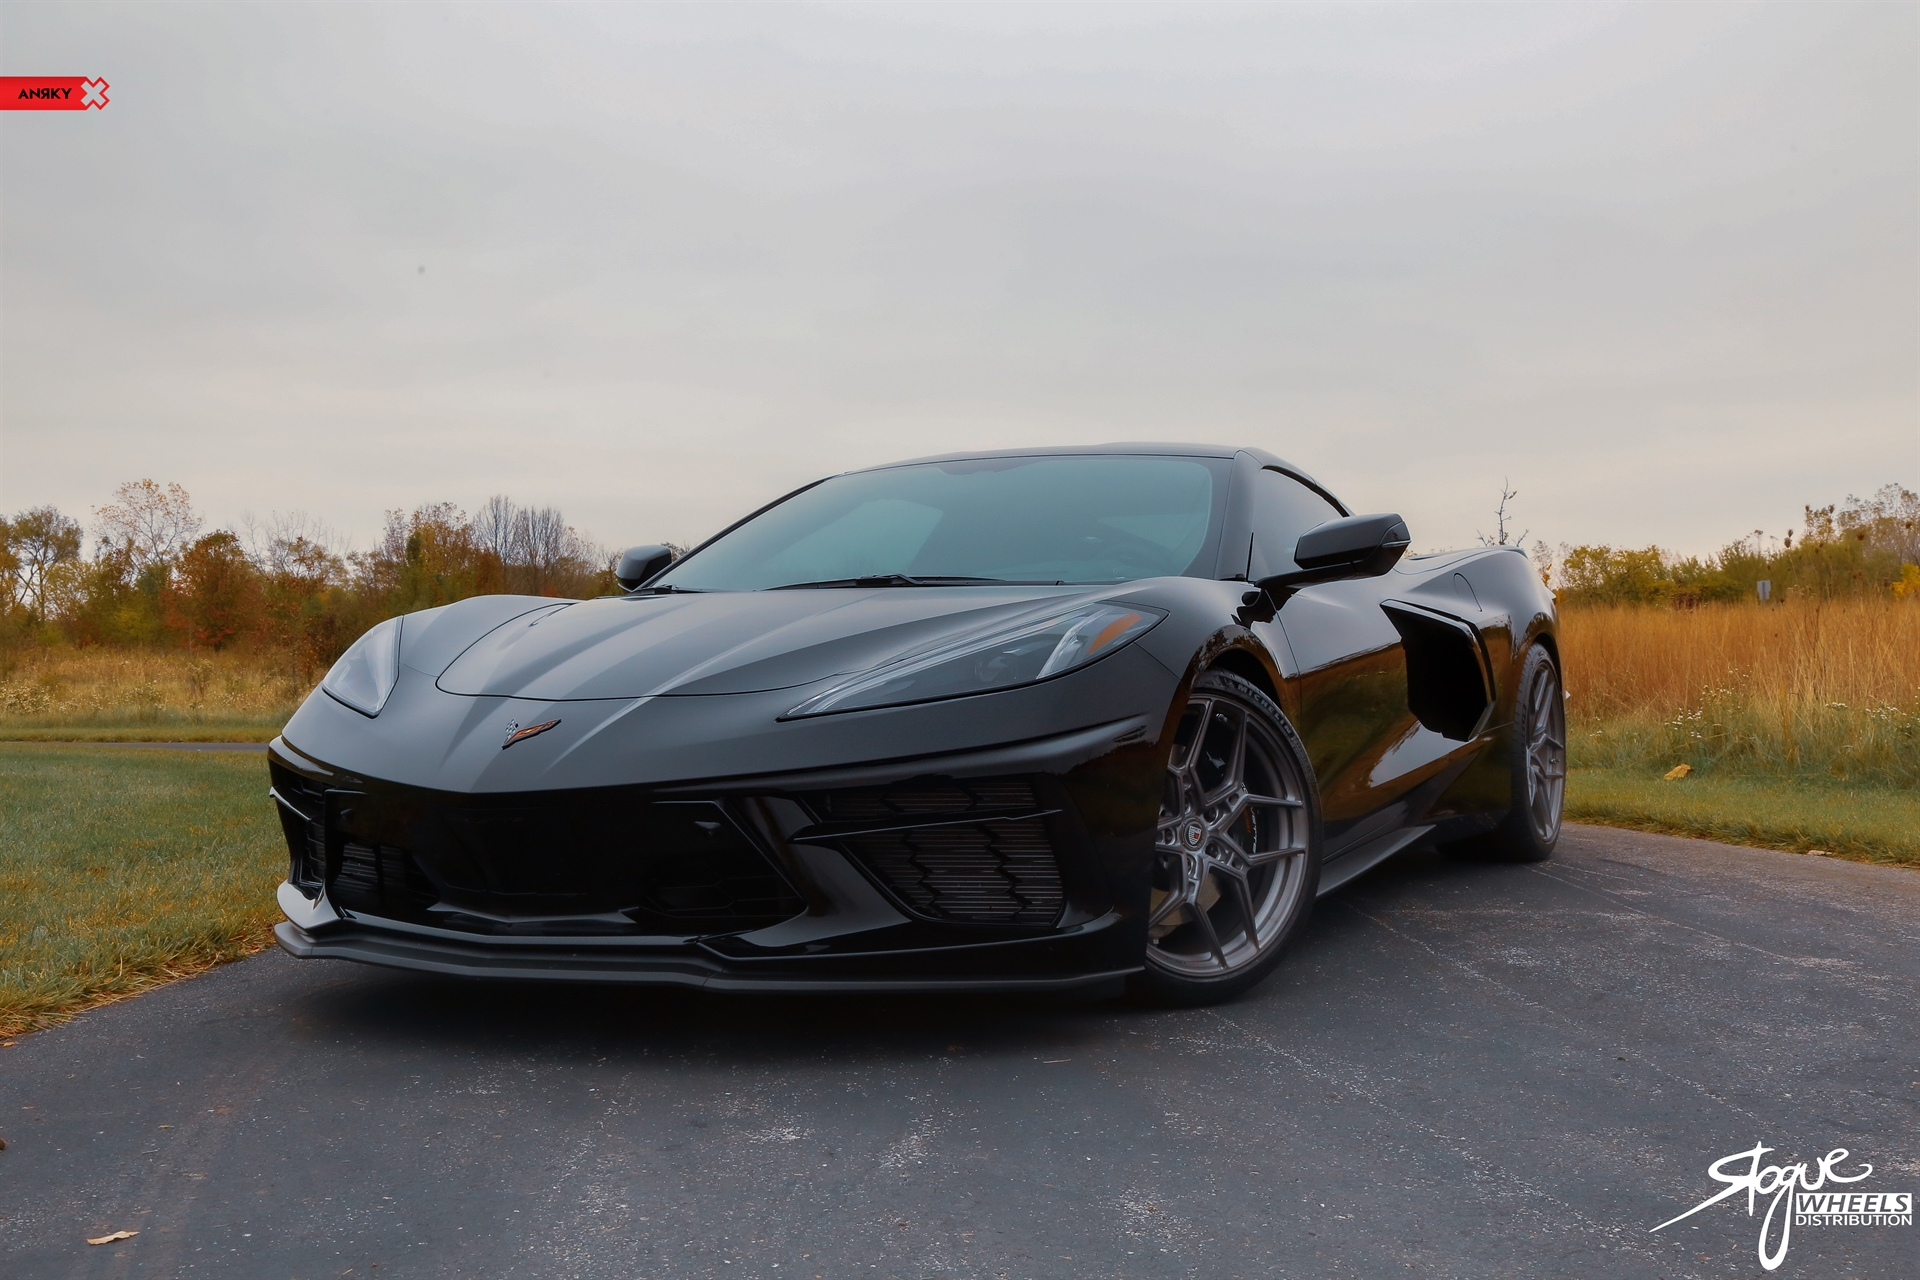 Chevrolet C8 Corvette Stingray – X|Series S1-X4